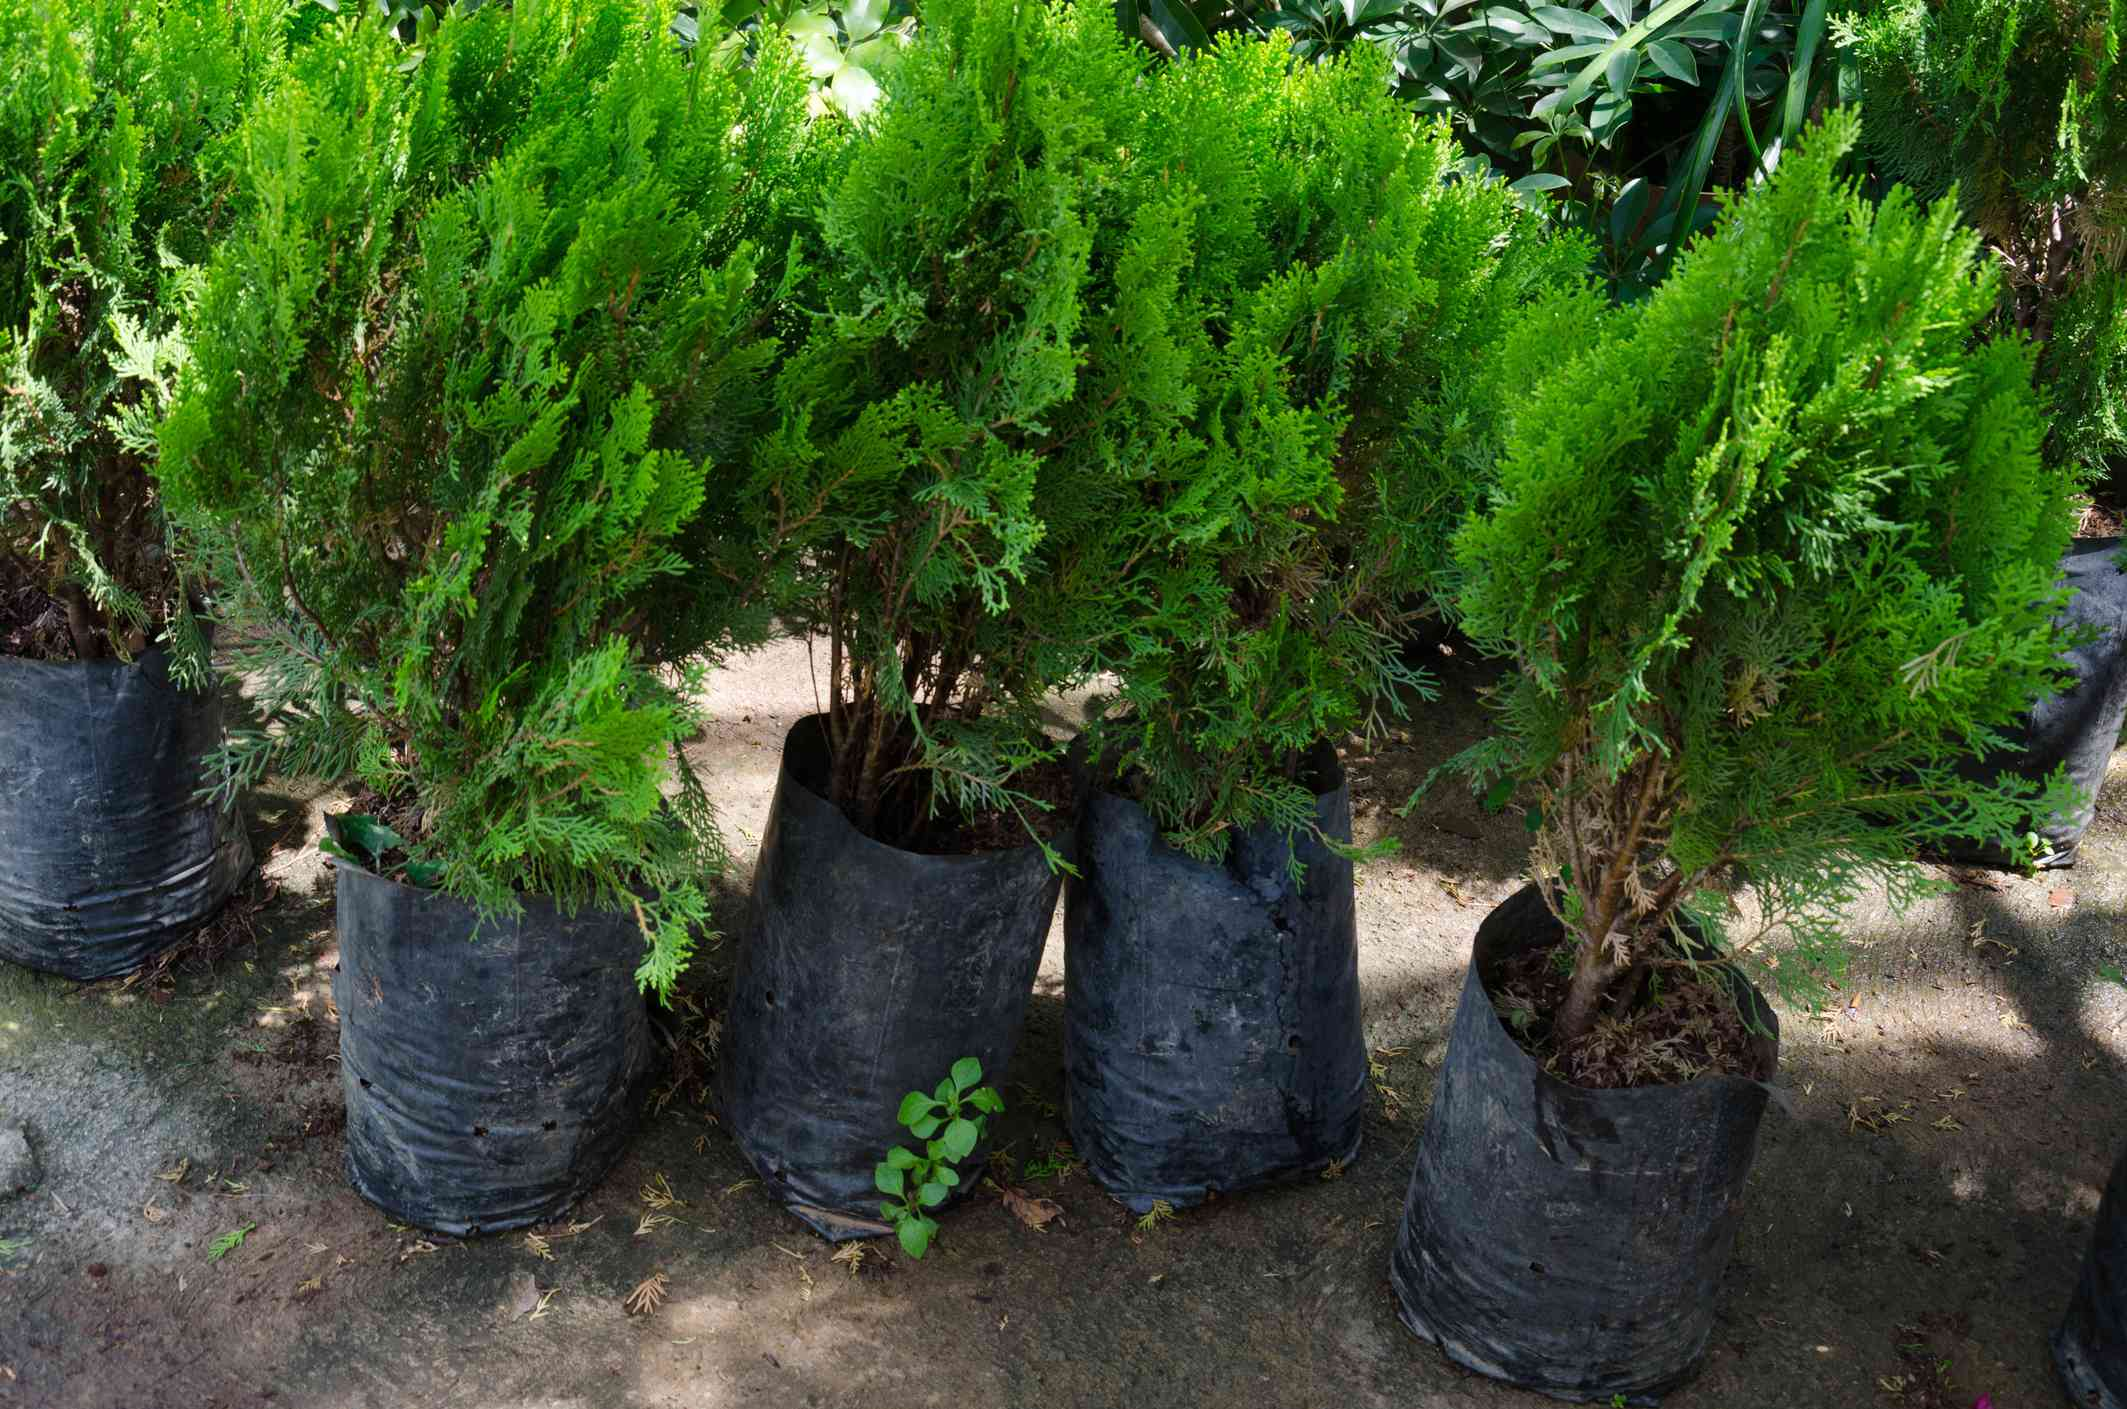 Thuja trees lined up in bags for planting.